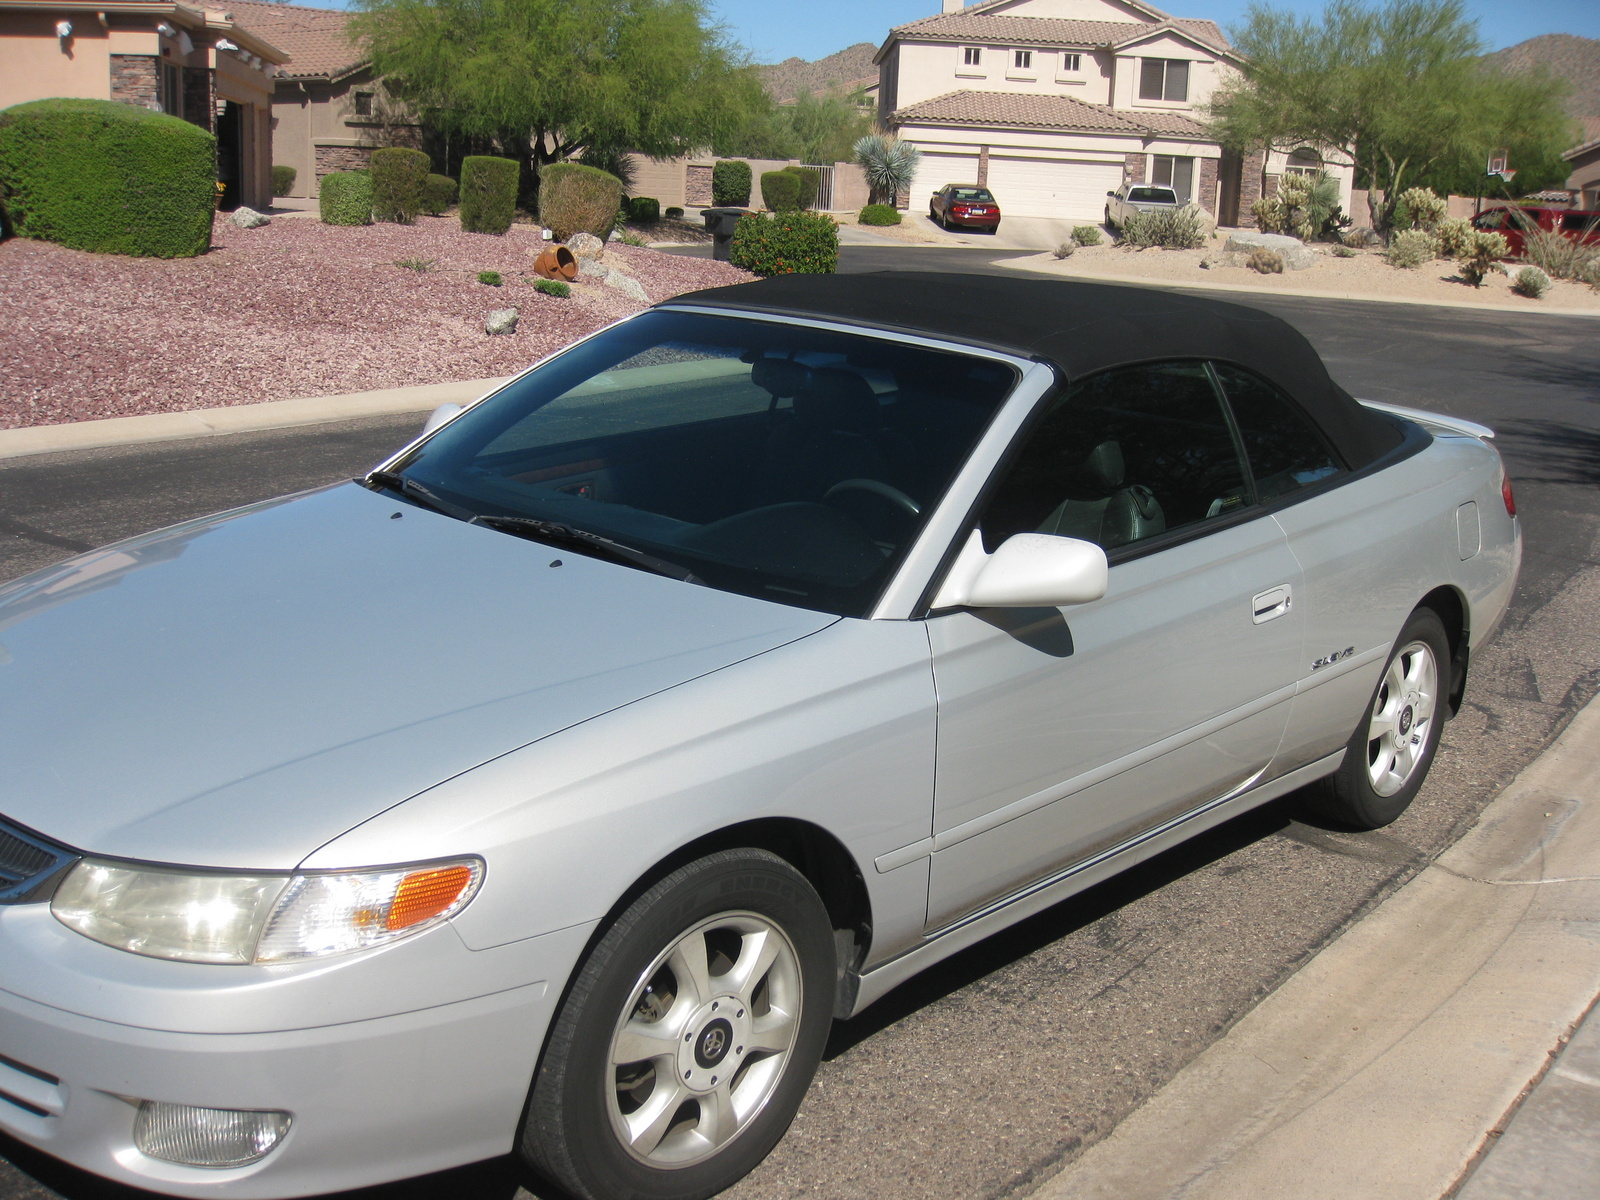 Pictures of a 2001 toyota solara